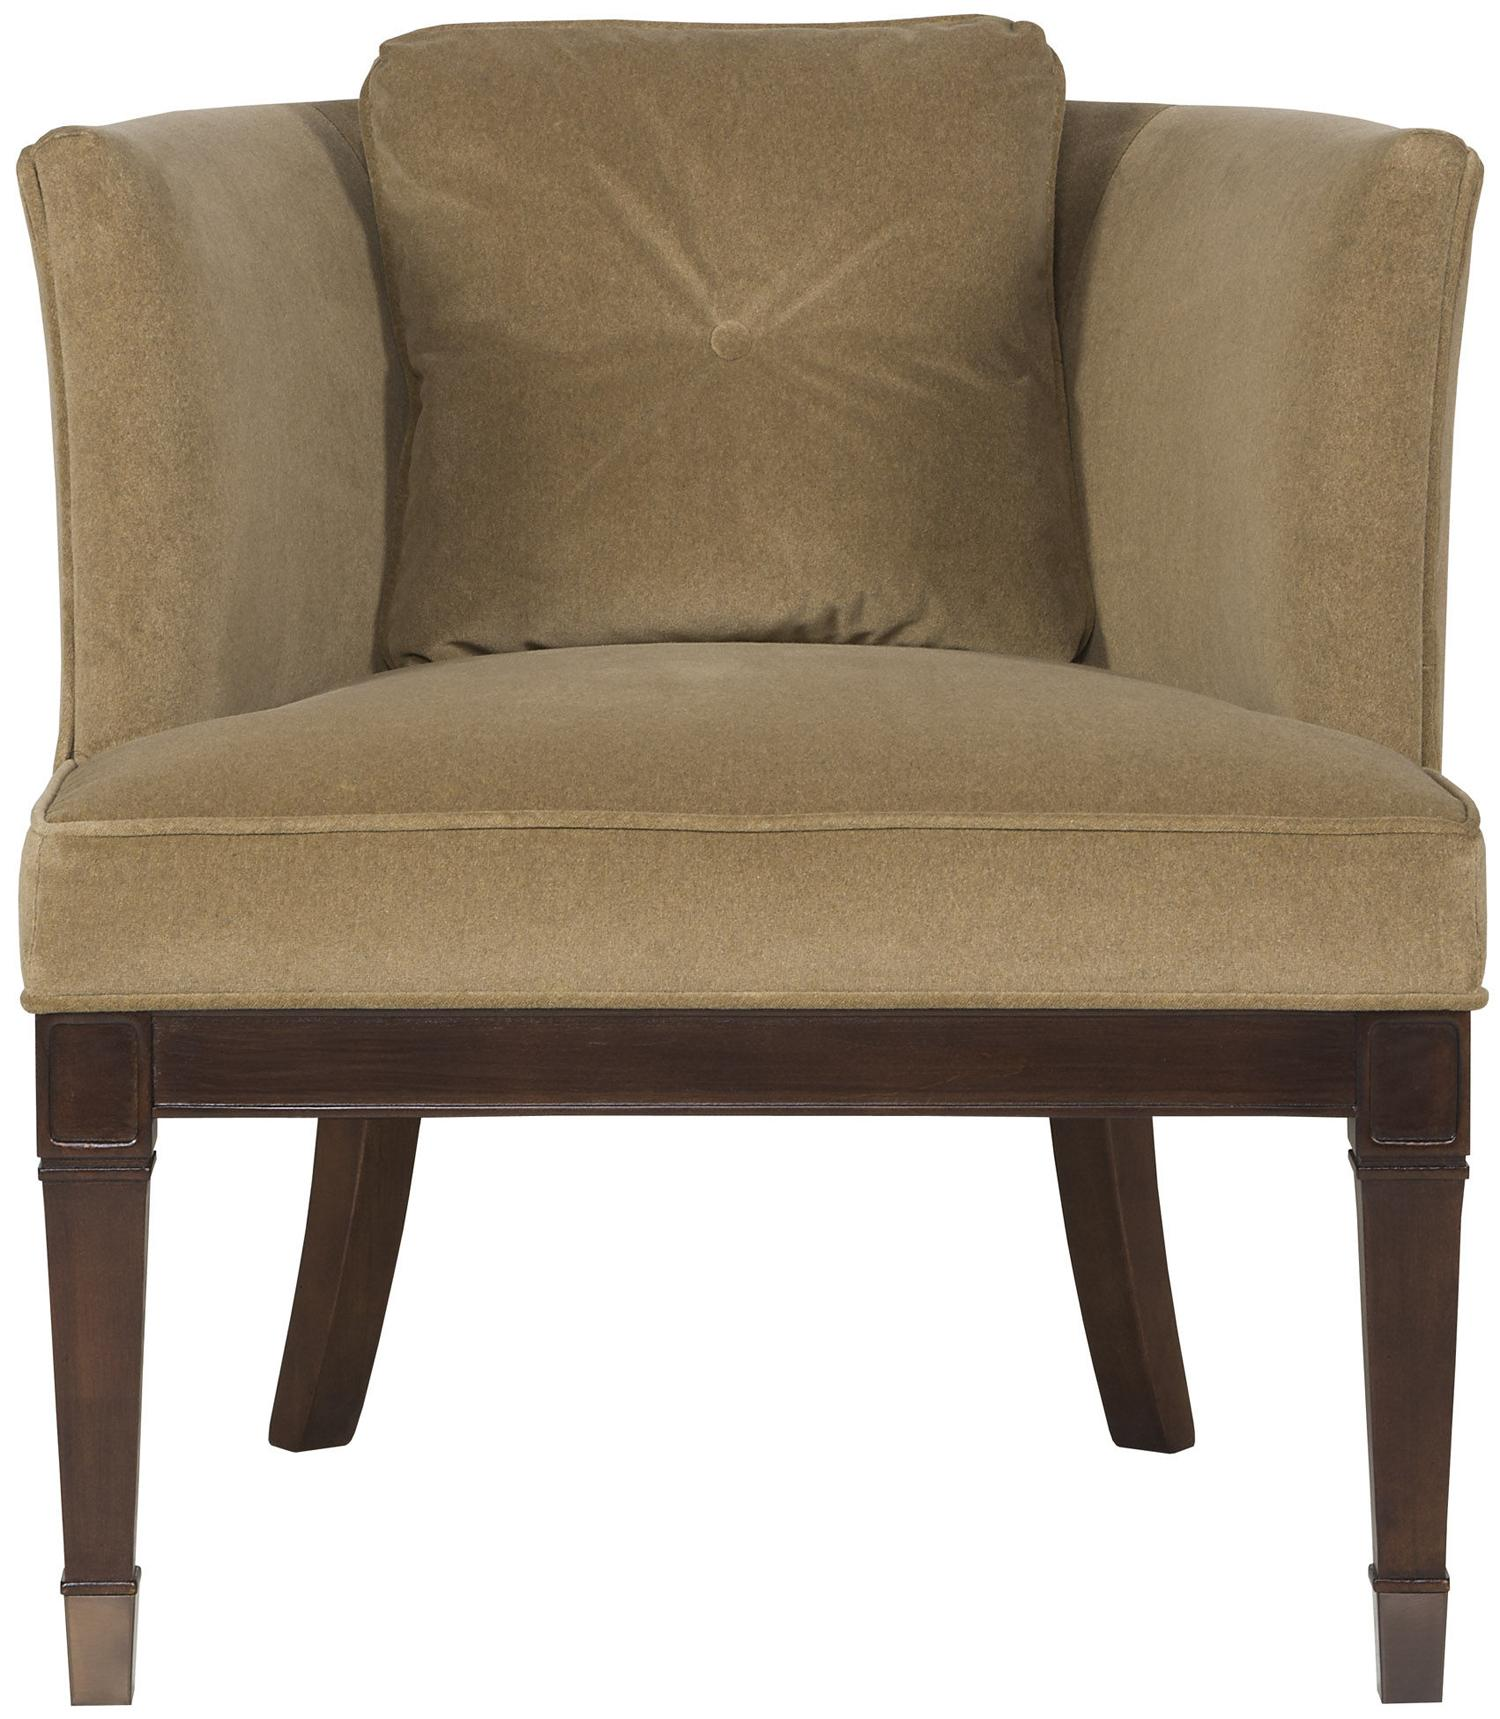 Sofa Mart Accent Chairs: Vanguard Furniture Accent Chairs Drake Transitional Chair